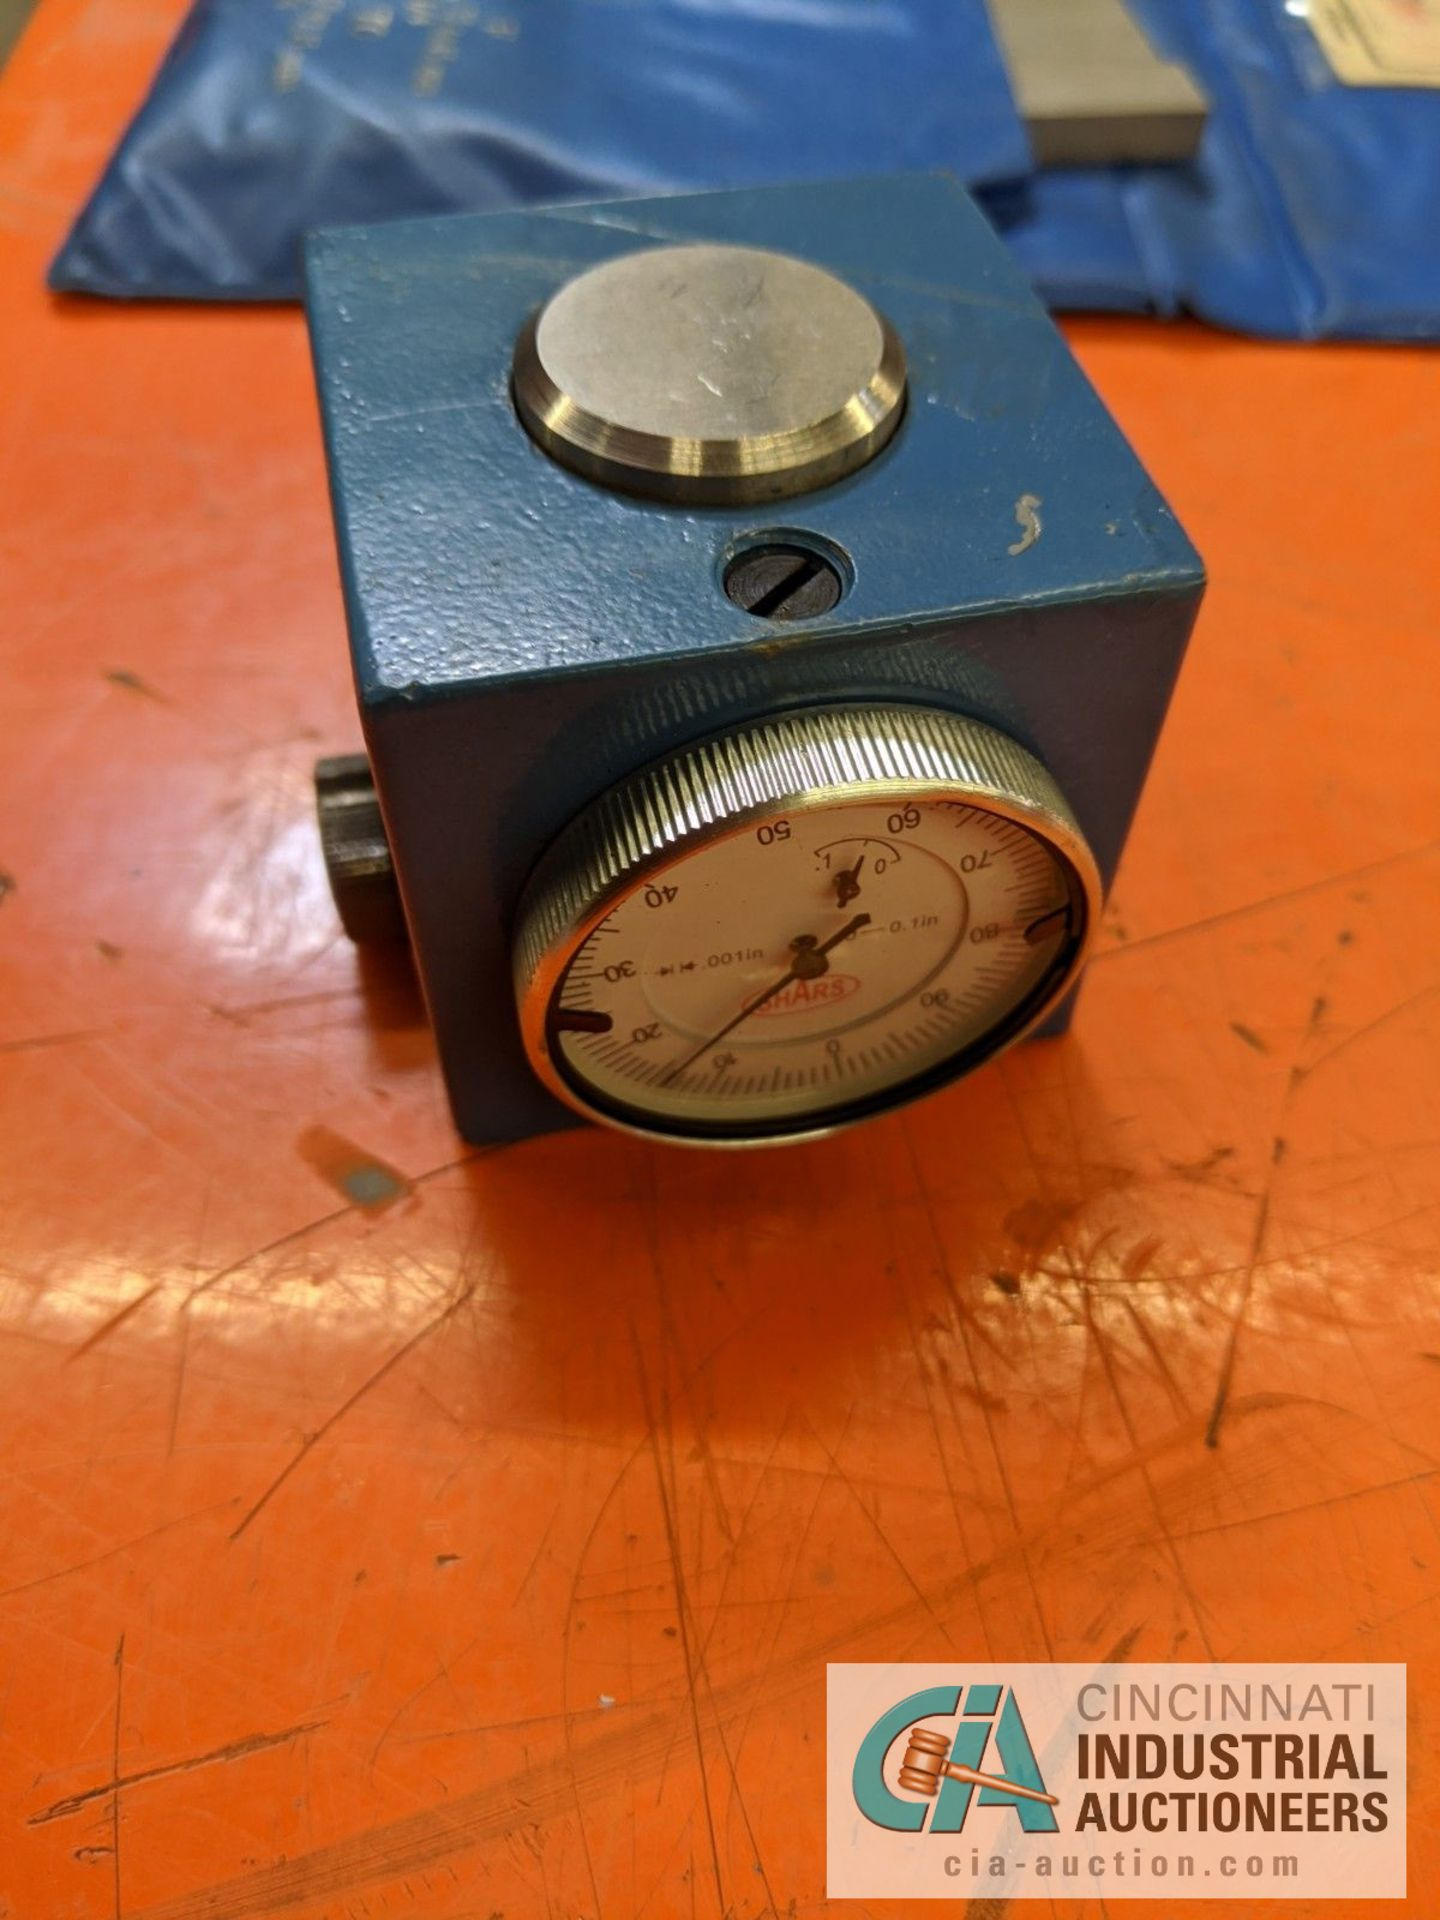 (LOT) INSPECTION; T-HANDLE MICROMETERS, PARALLEL SET AND Z-AXIAL PRESET GAUGE - Image 7 of 8